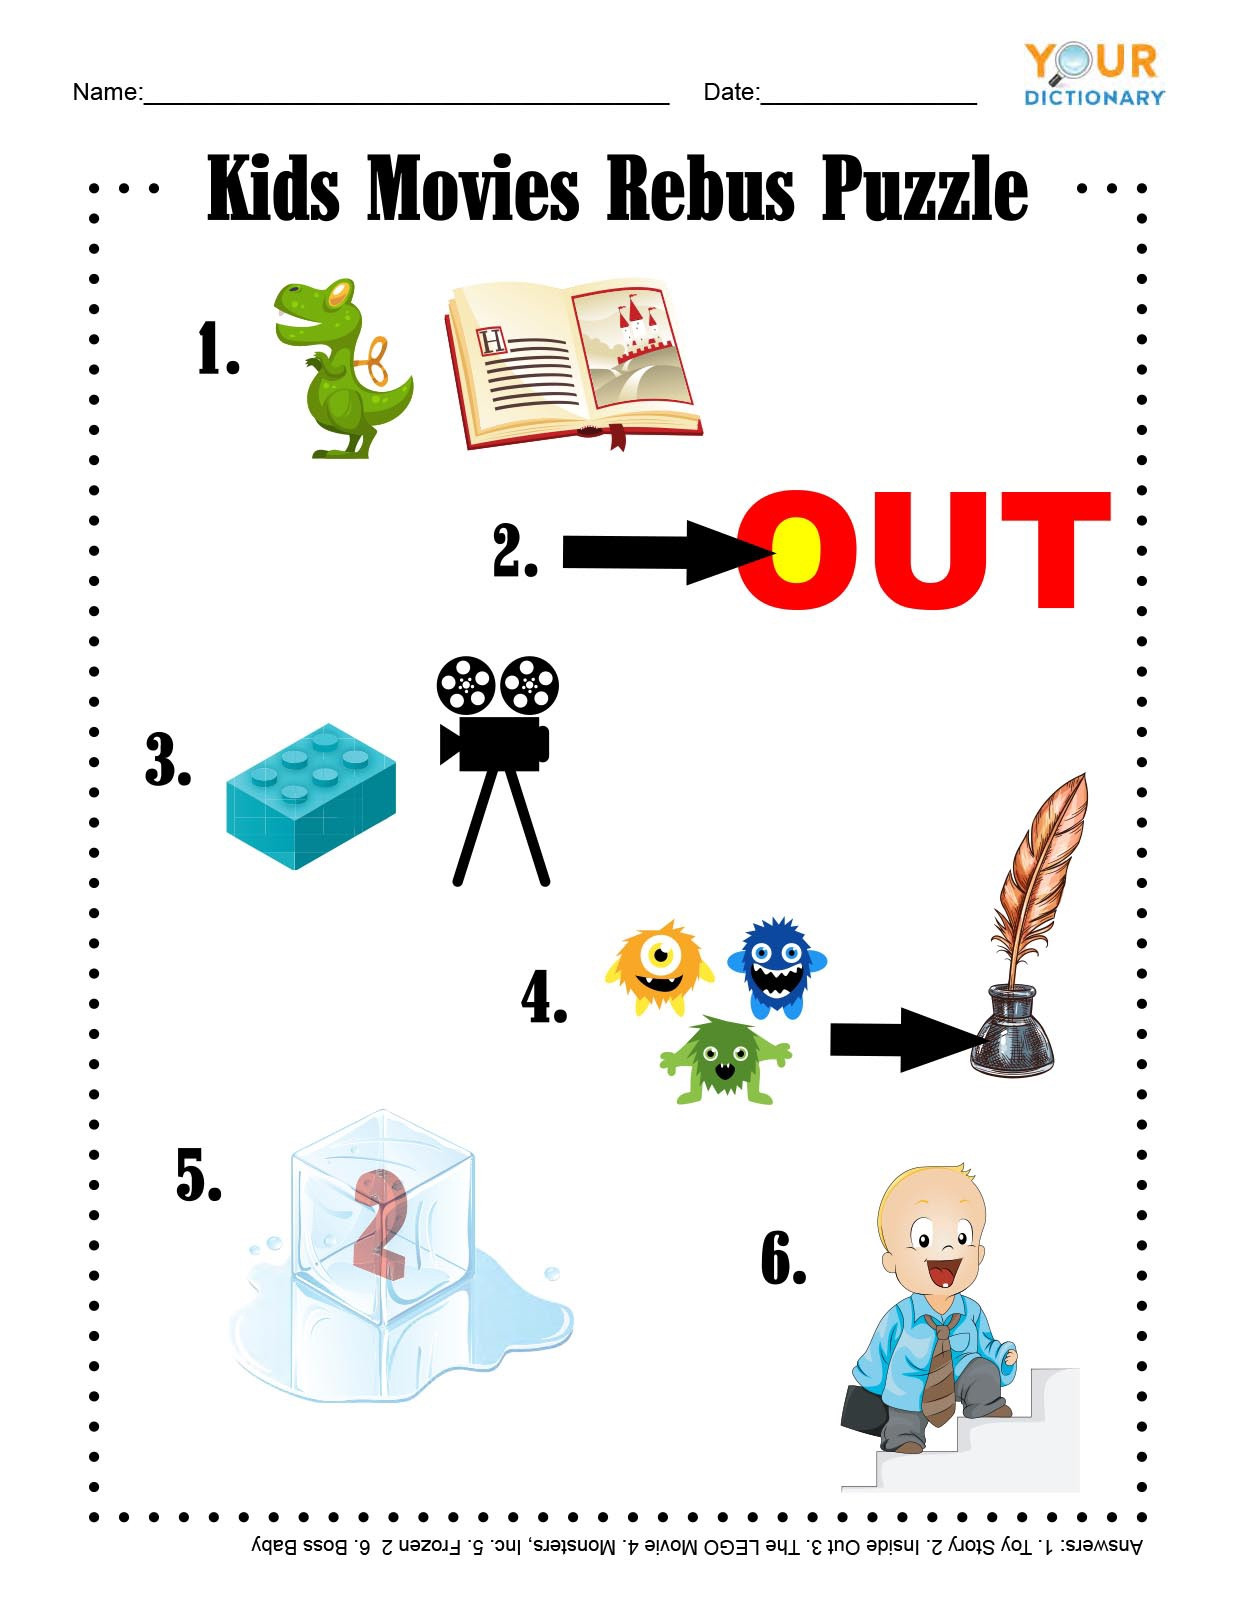 Pictogram Puzzles Printable Fun & Free Printable Word Games for Kids